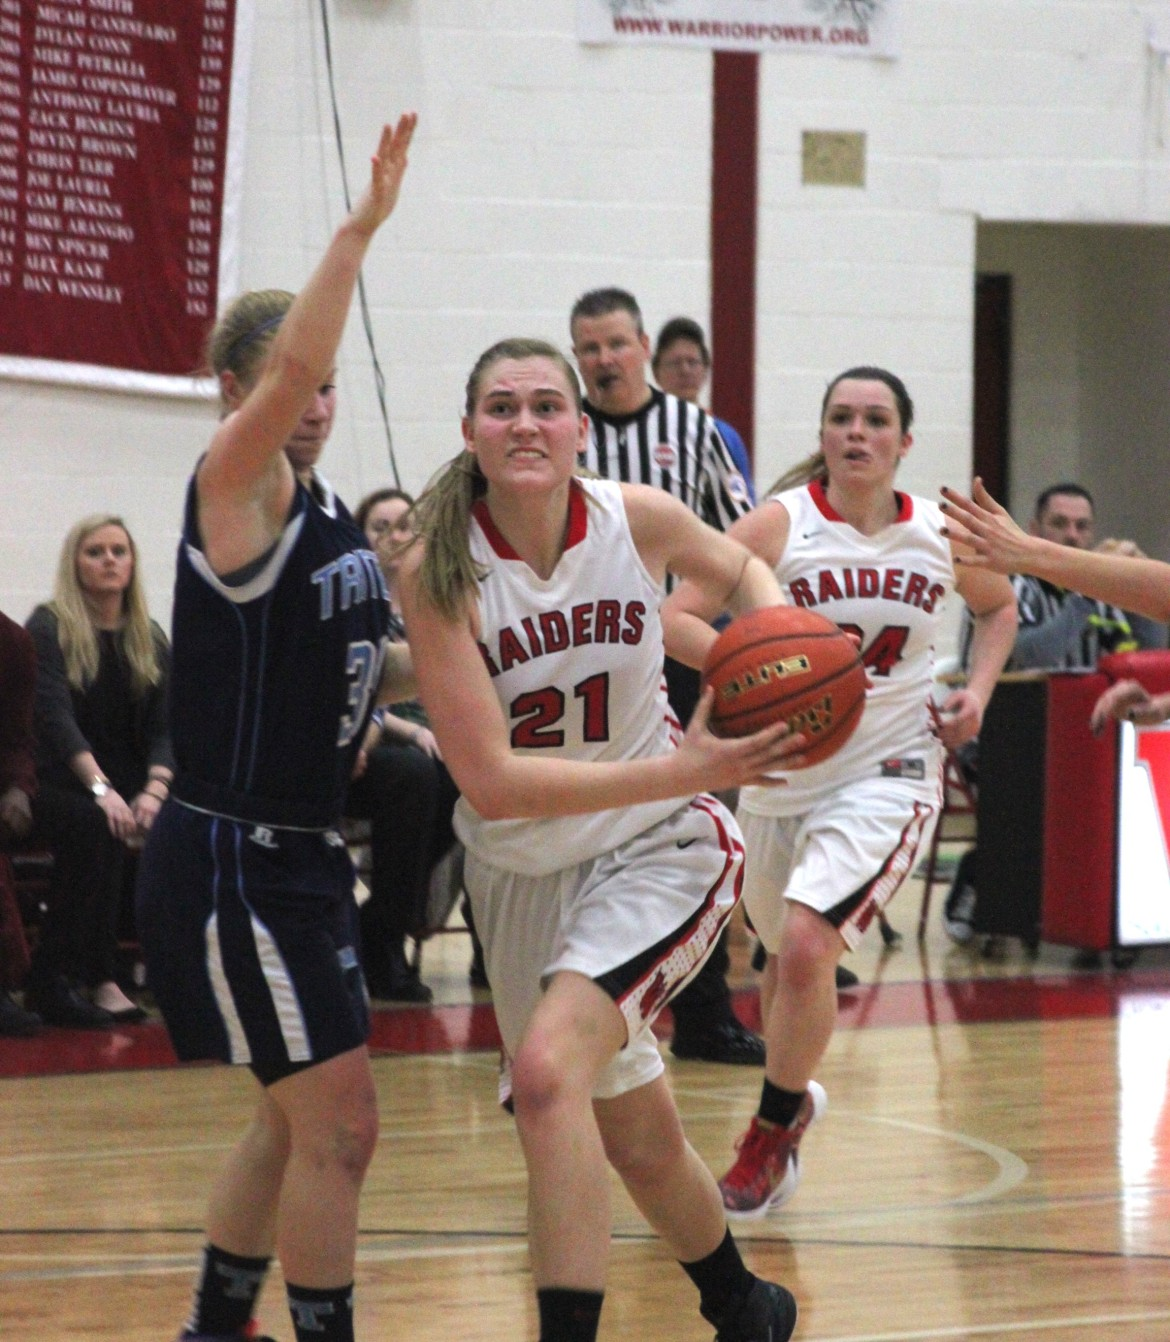 Watertown junior center Shannon Murphy drives to the hoop against Triton. She finished with 16 points in the Section Semifinal victory.